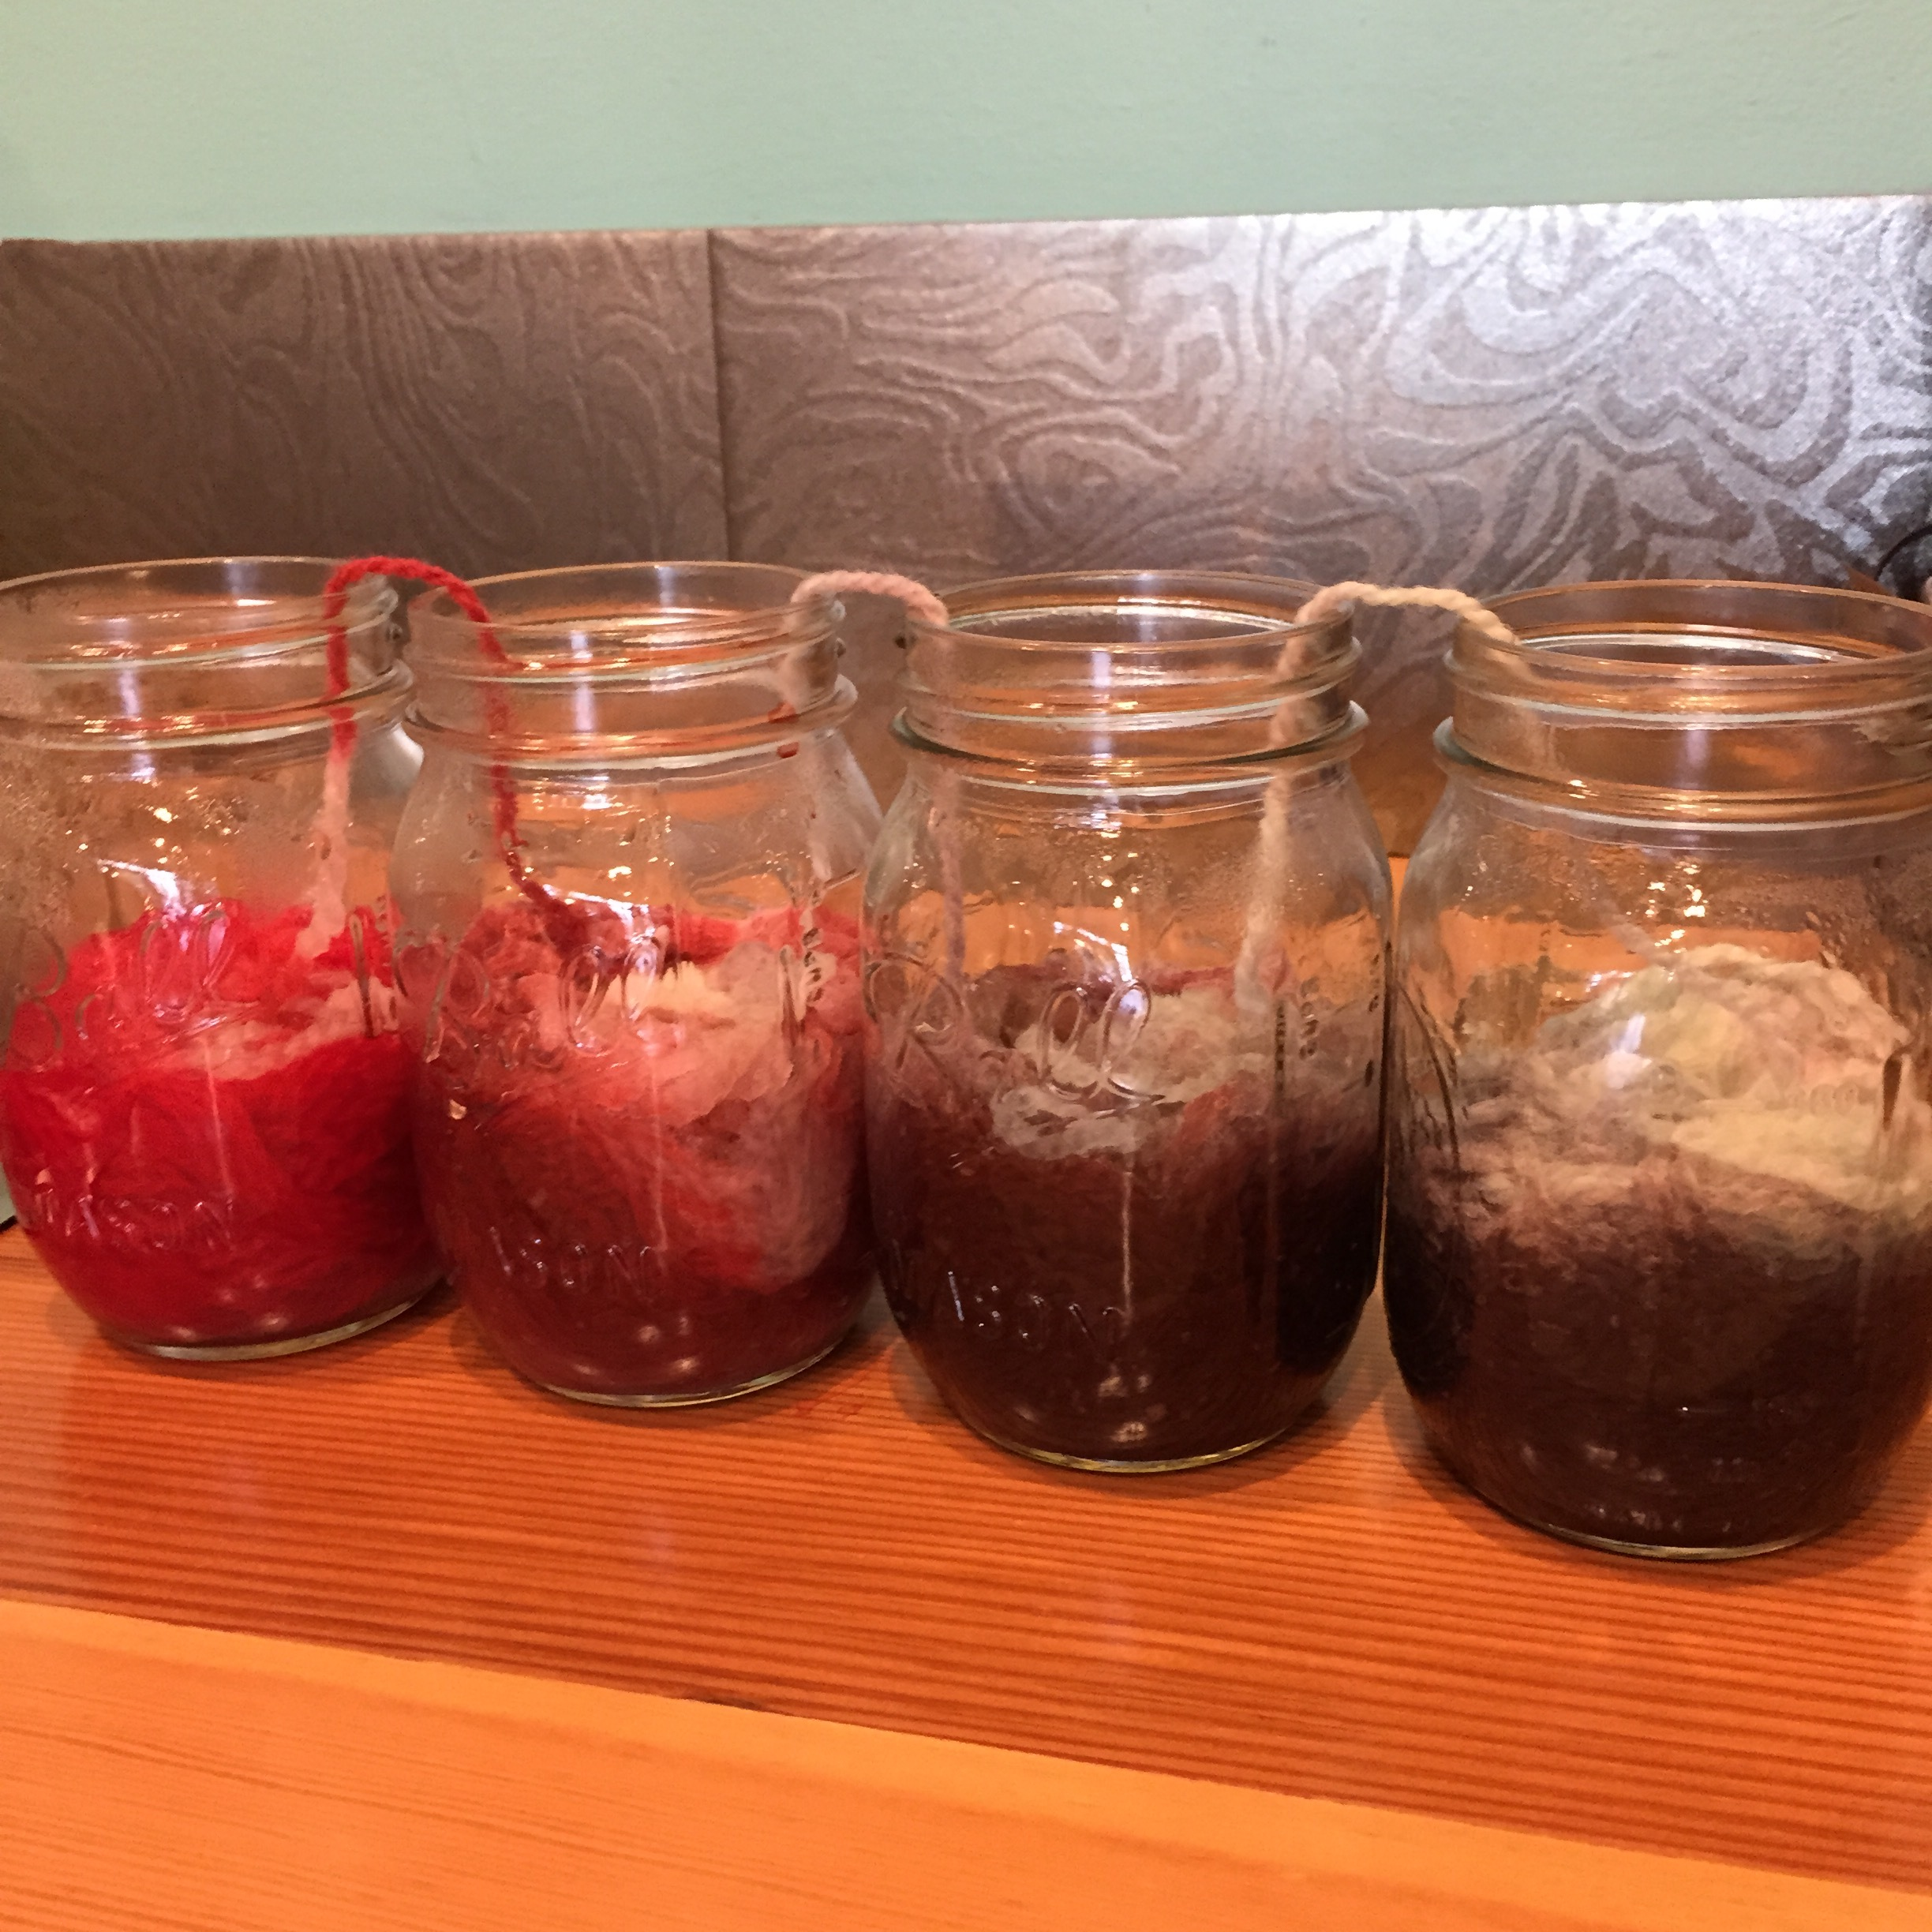 I shoved the balls of yarn into the jars and quickly realized that I hadn't added enough water. (See the white yarn?) I tried to add more water, but the dye had already migrated into the yarn and out of the water.  Oh well, I was pretty sure it would still look cool.